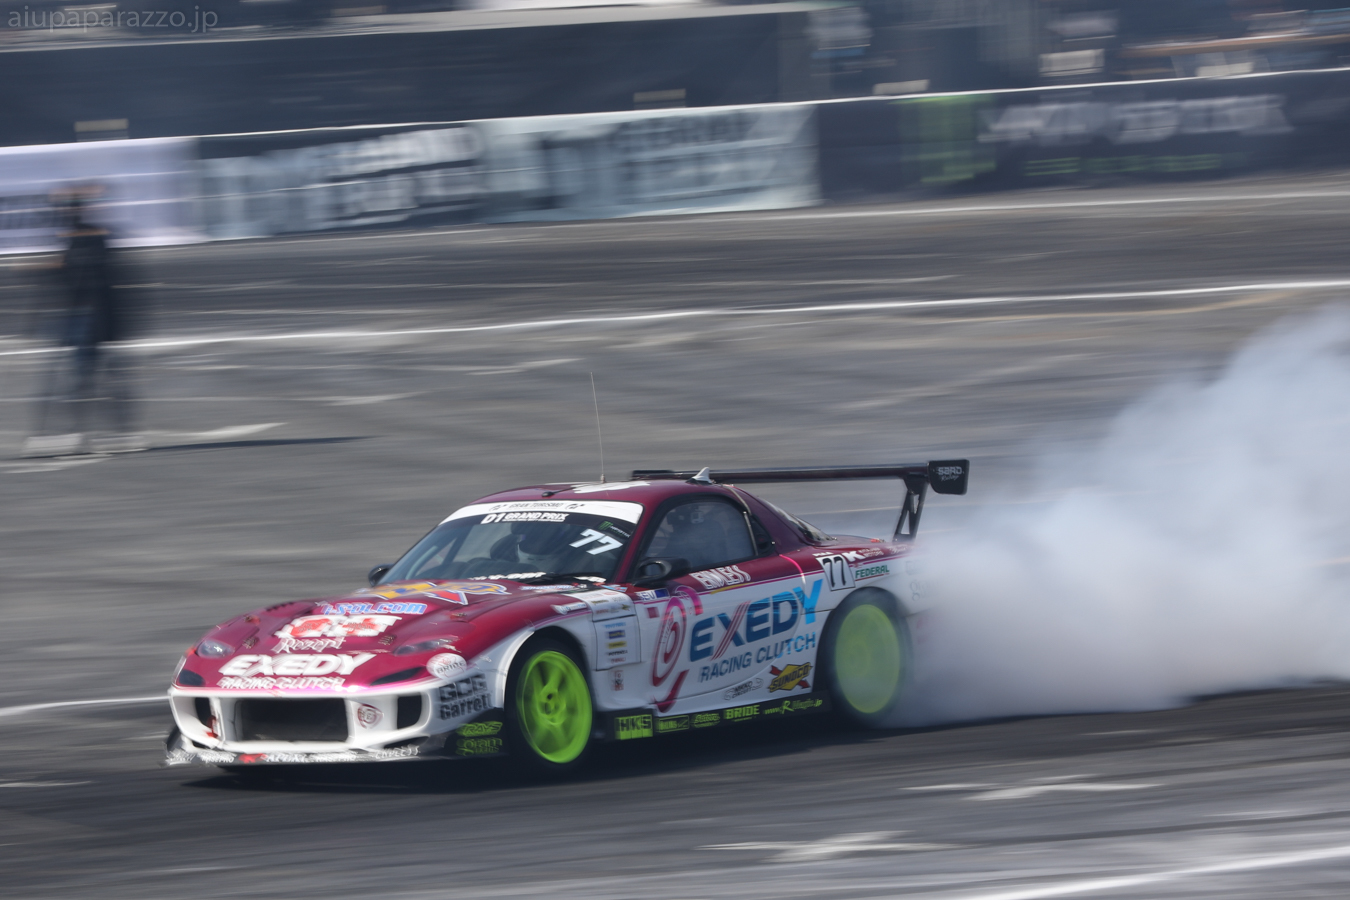 d1gp_tan2016lap3-26.jpg